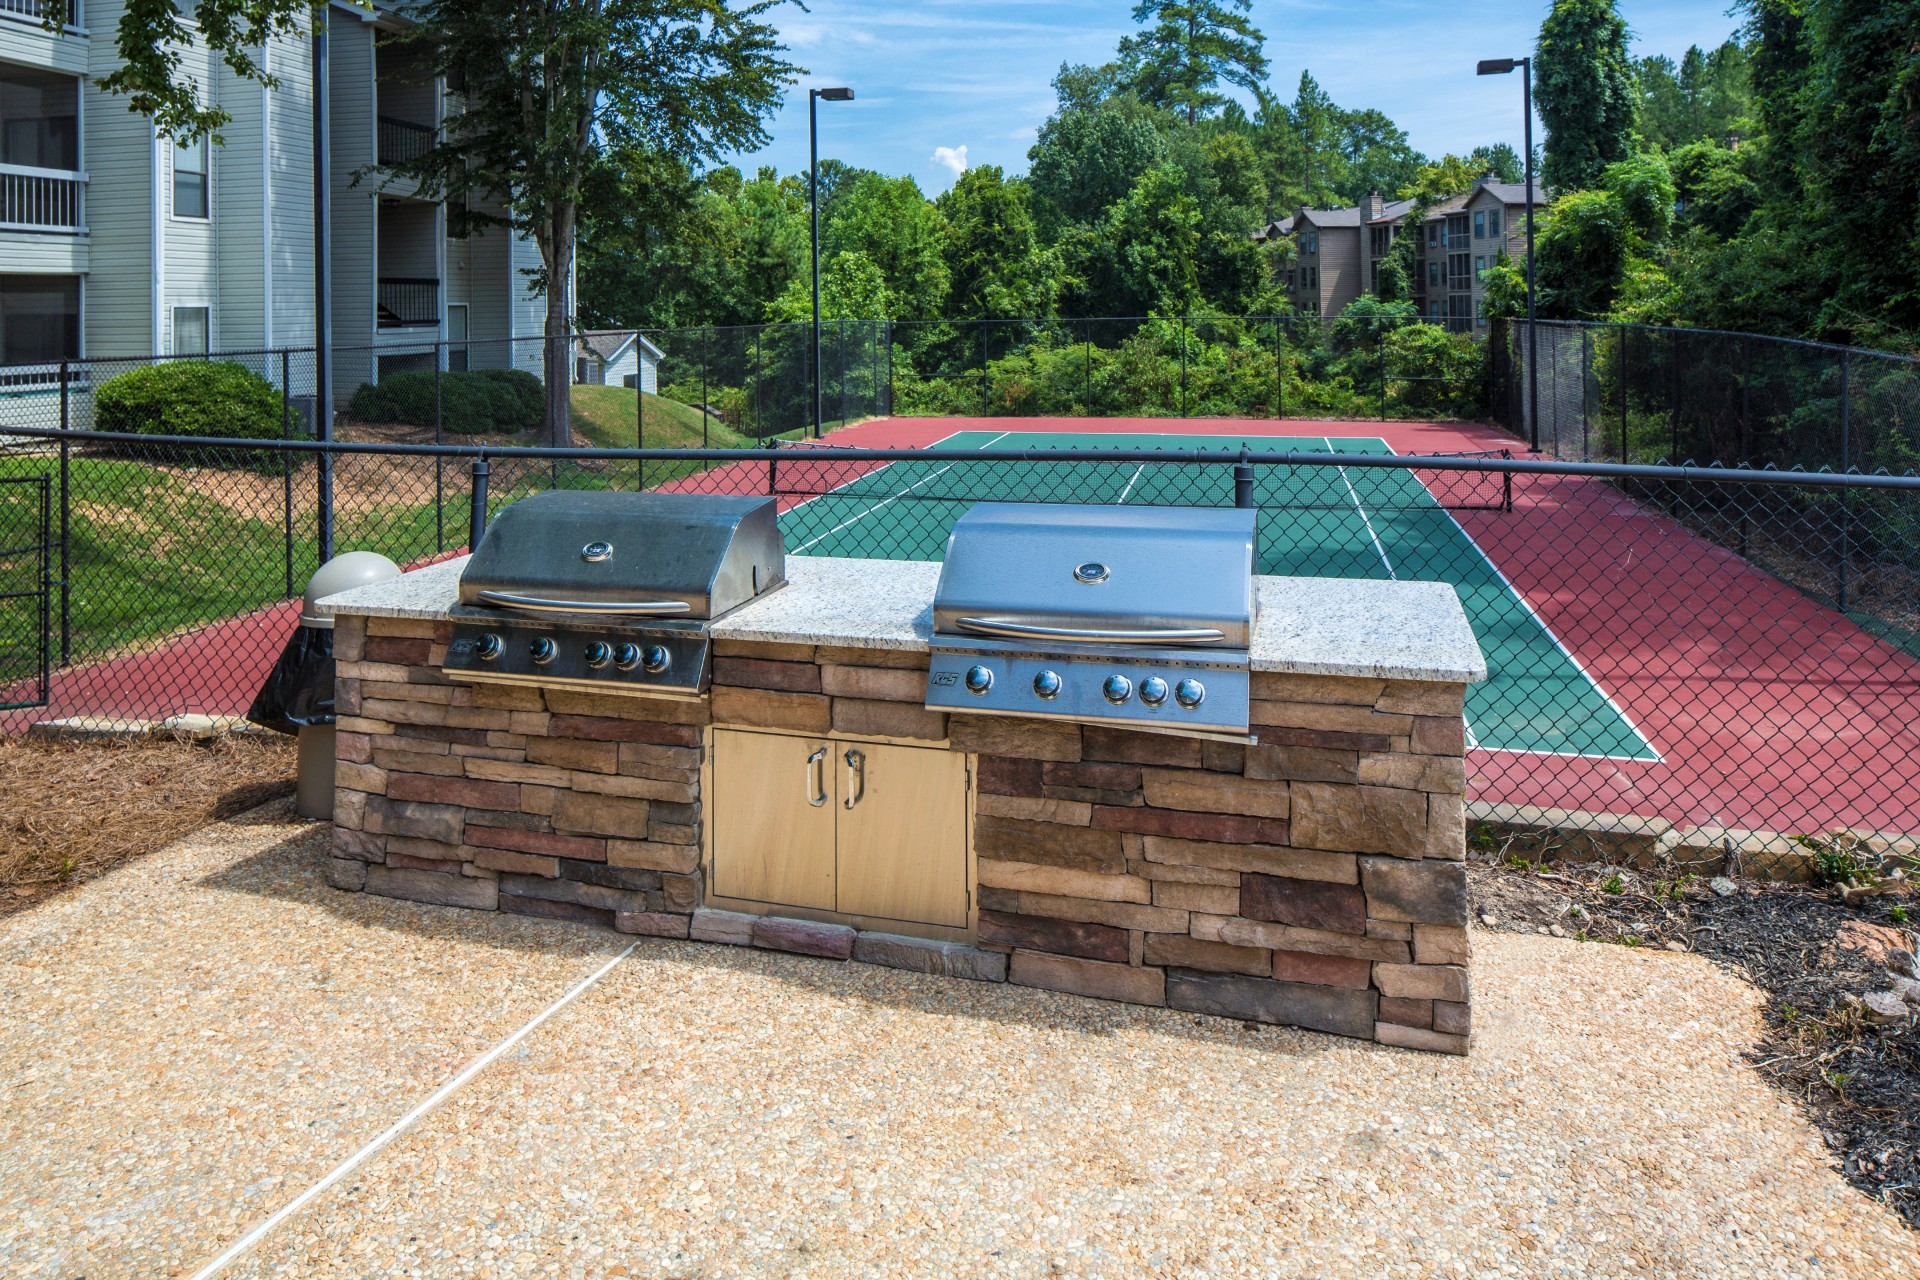 Outdoor Kitchen Next to Fenced Tennis Court with Building Exteriors and Trees in the Background